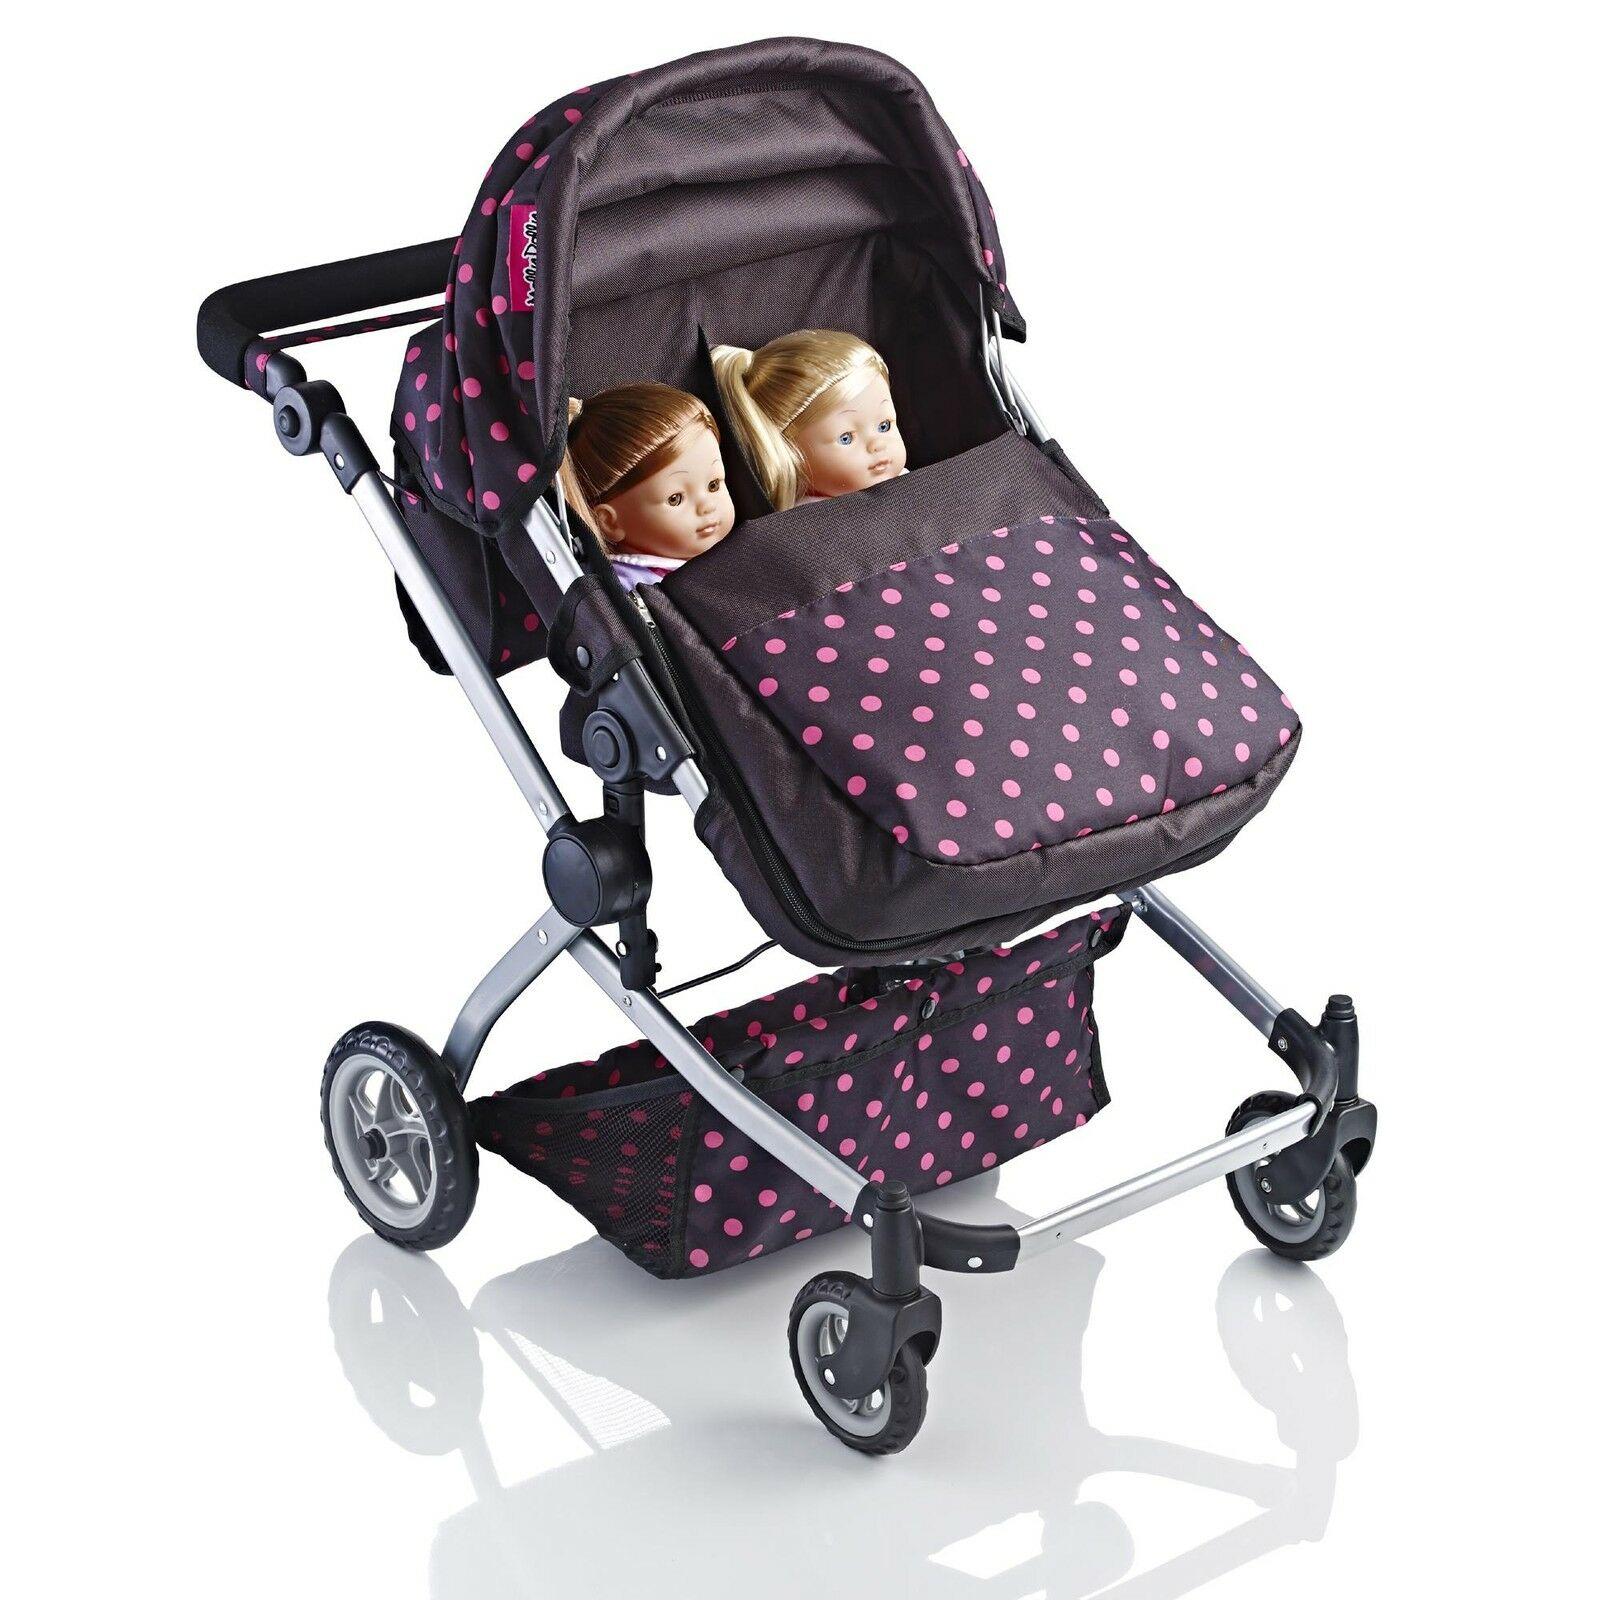 Molly Dolly 2 in 1 Twin Deluxe Babyboo Doll Stroller/Pram Buggy Girls Junior Toy 2